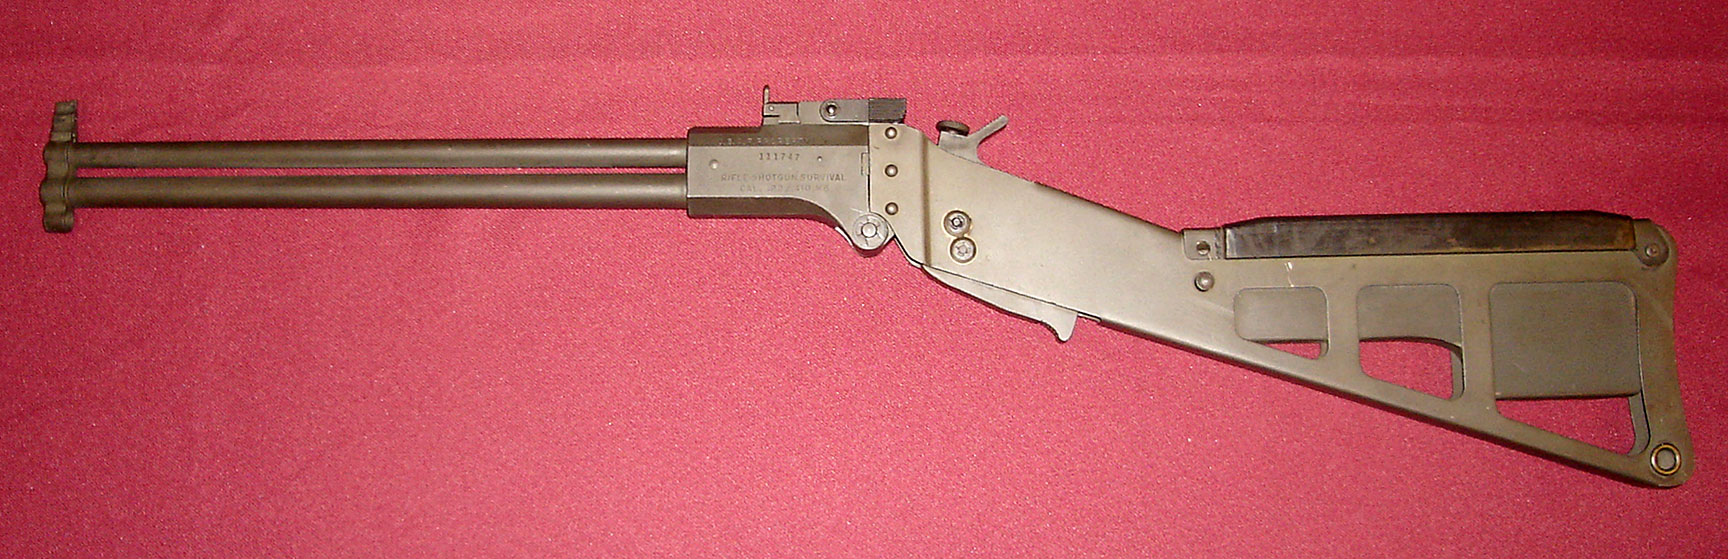 M6 Aircrew Survival Weapon | Military Wiki | FANDOM powered by Wikia